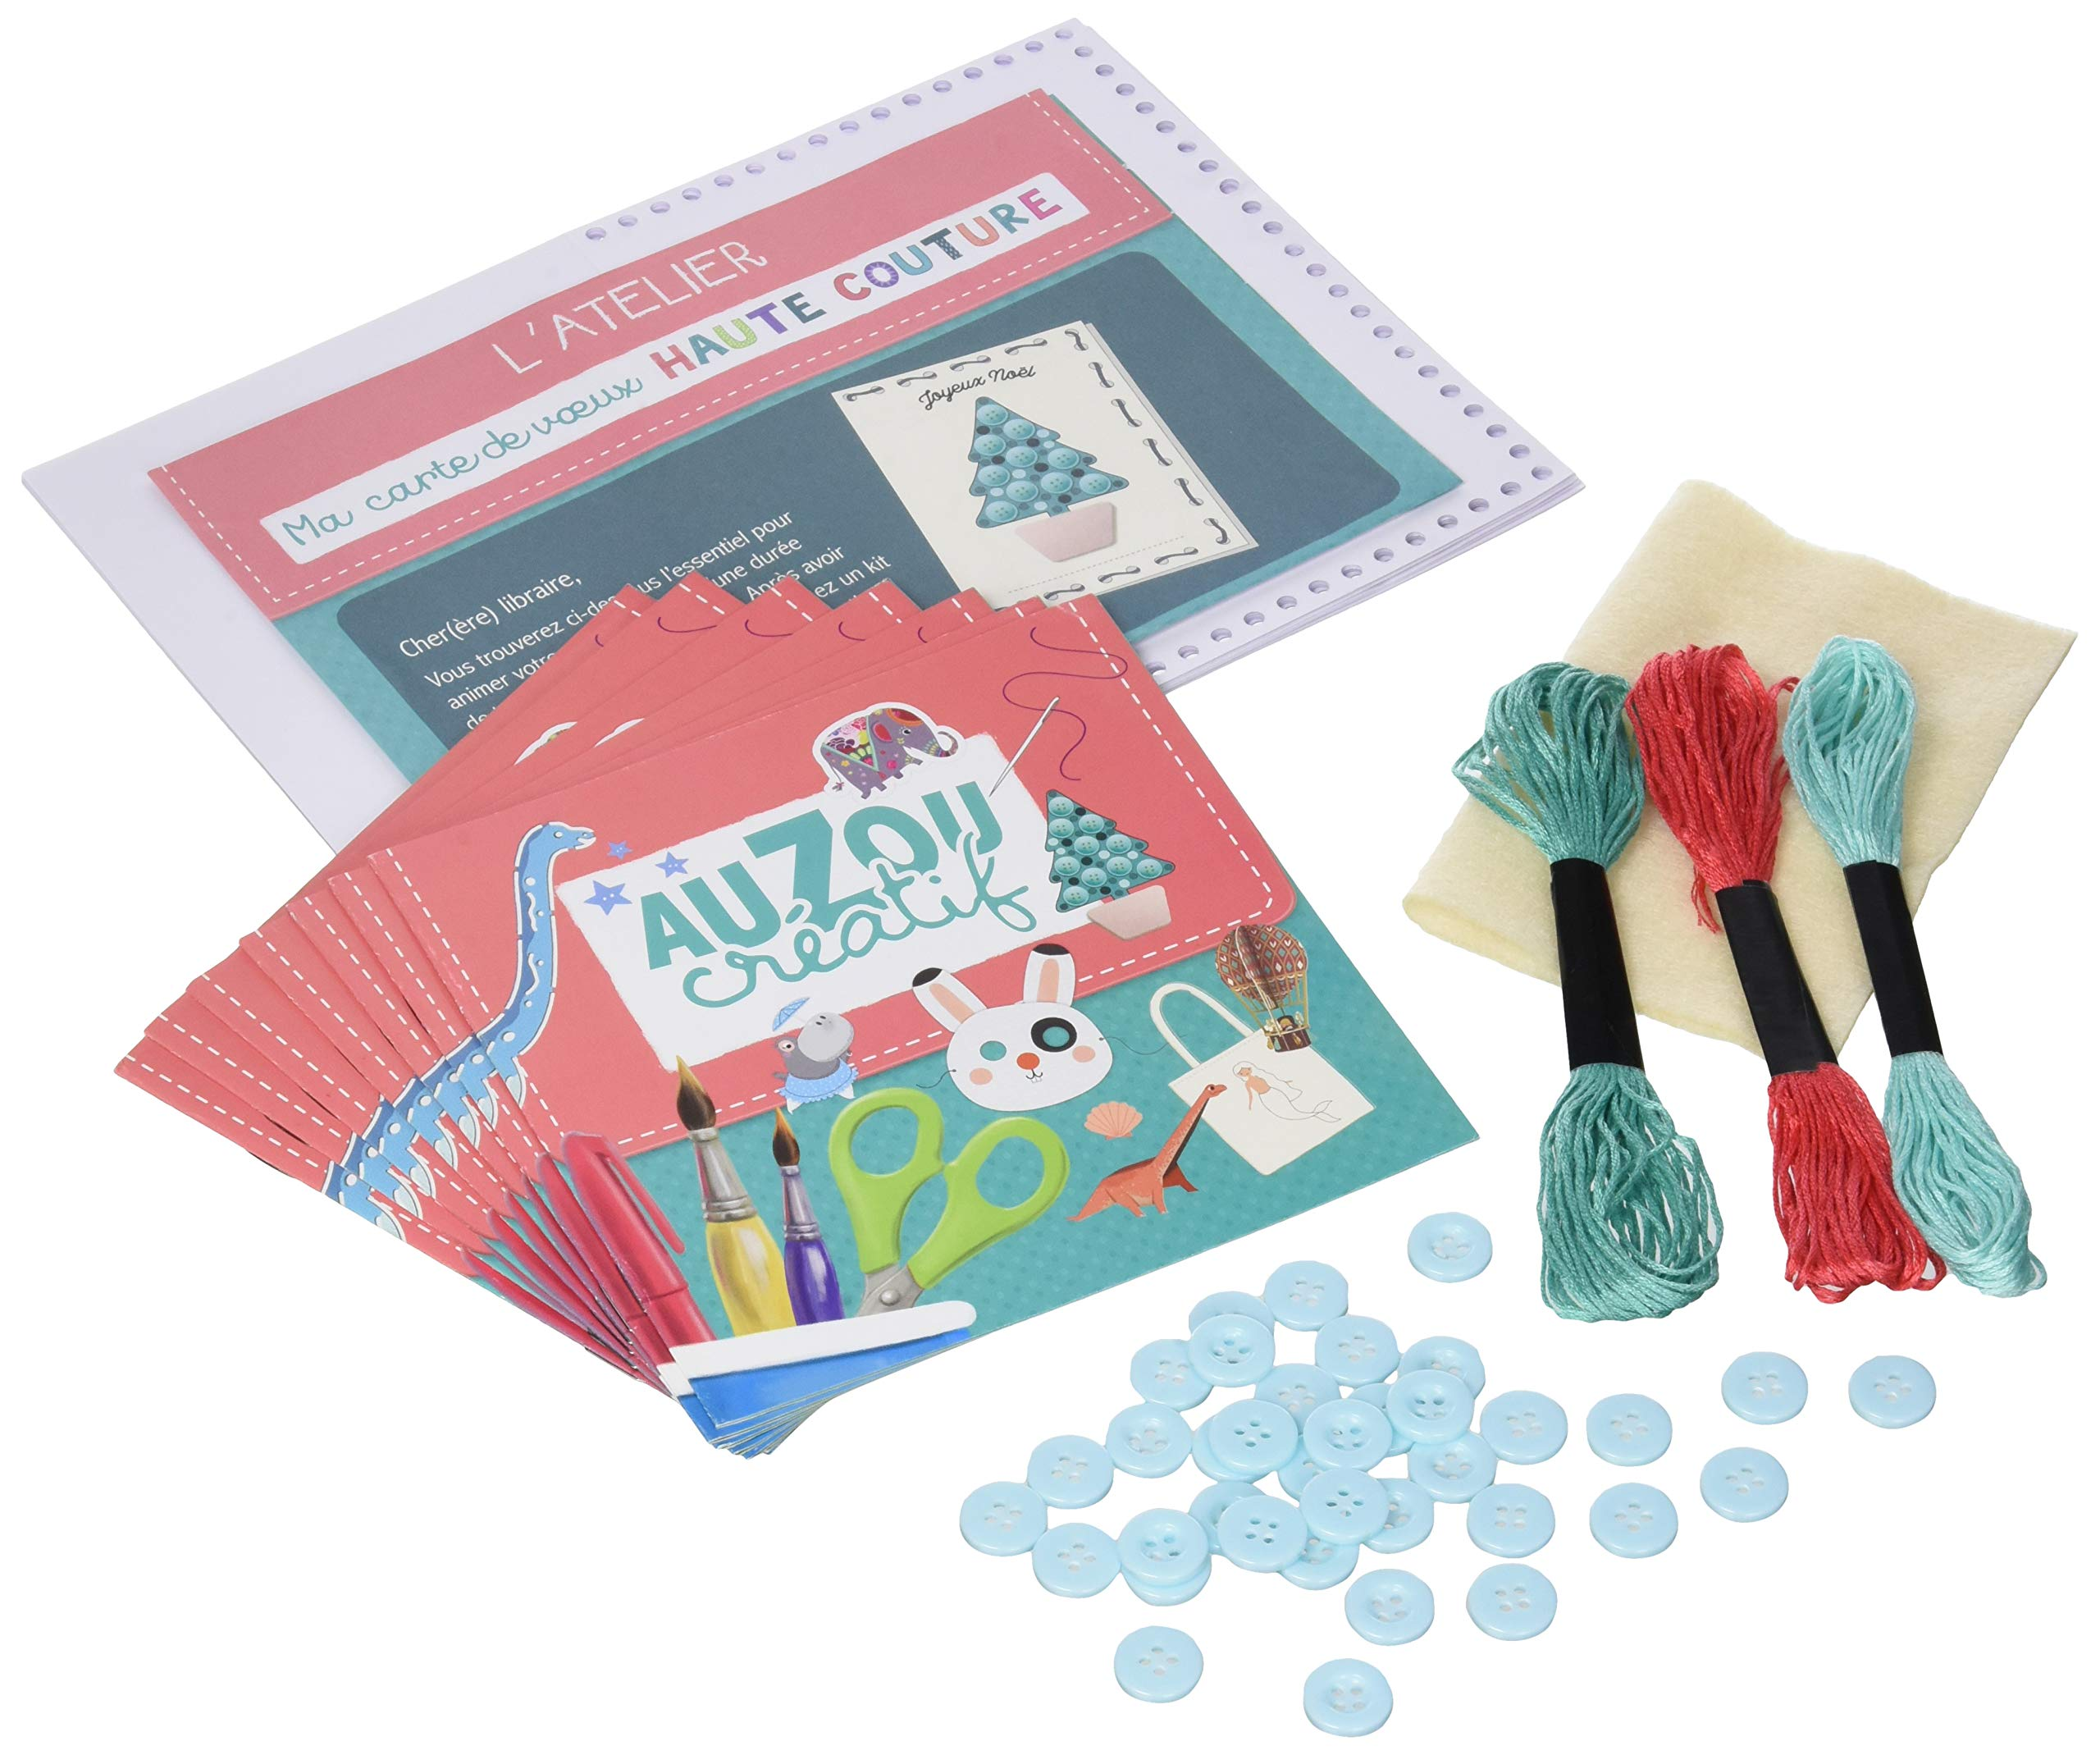 Amazon.in: Buy Kit ma carte de Noël Book Online at Low Prices in